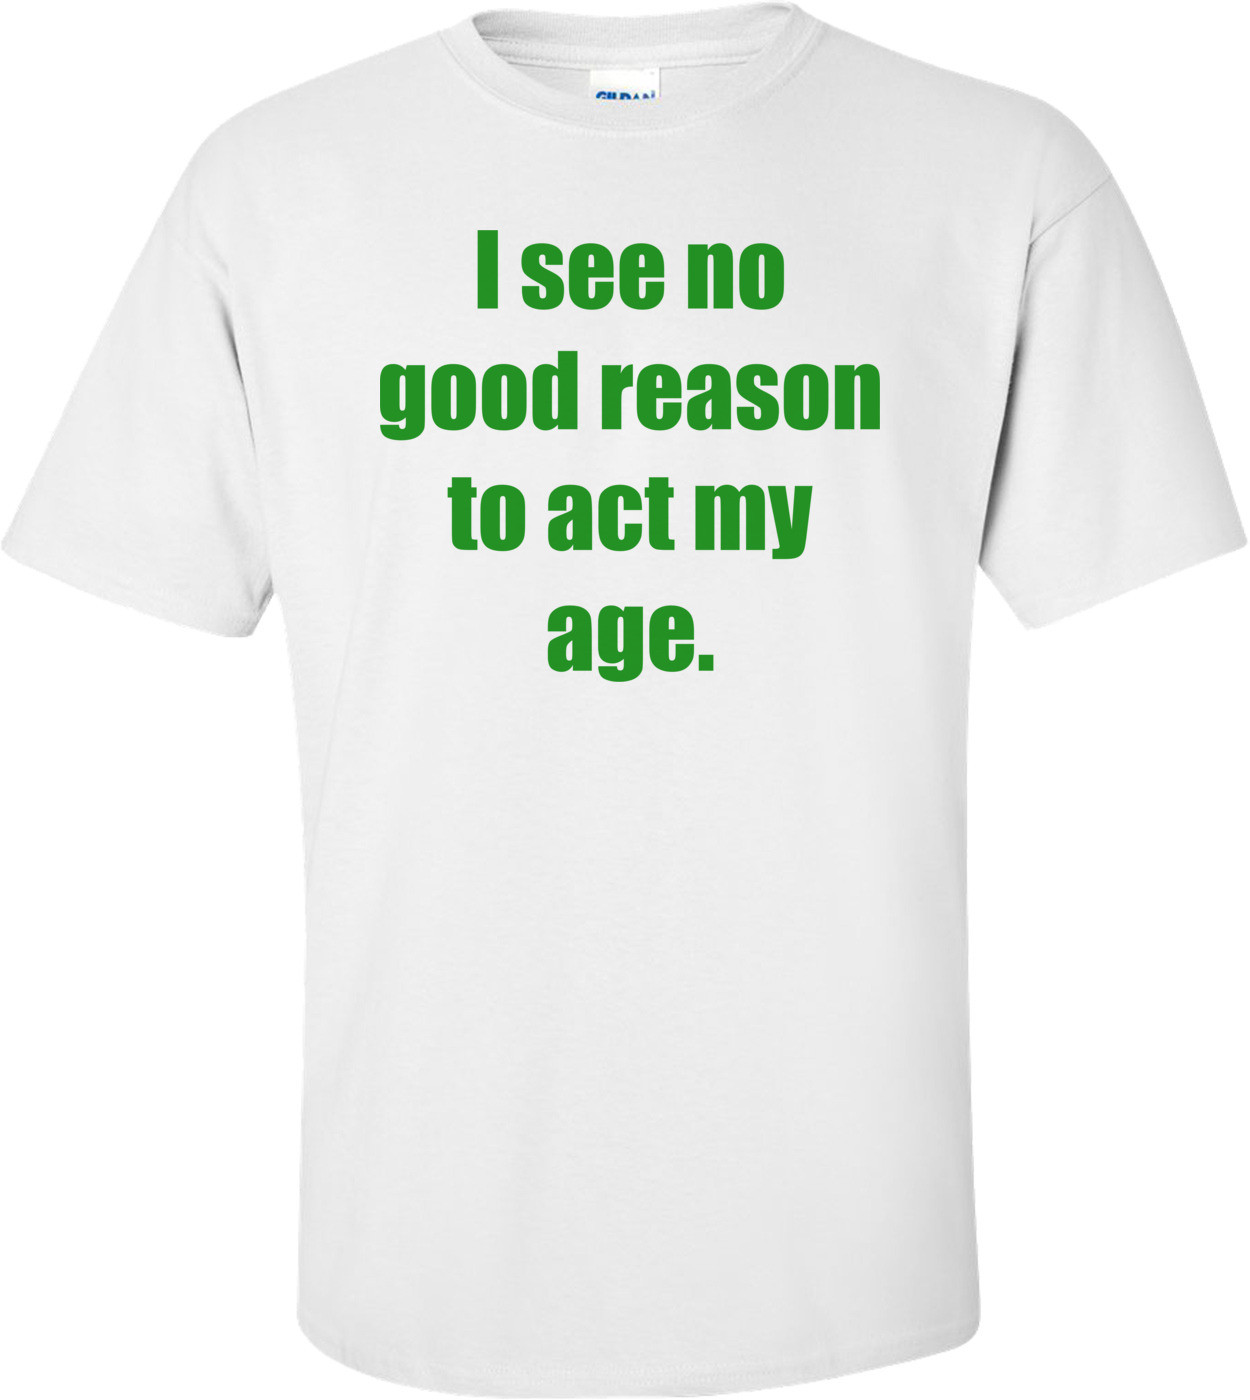 I see no good reason to act my age. Shirt